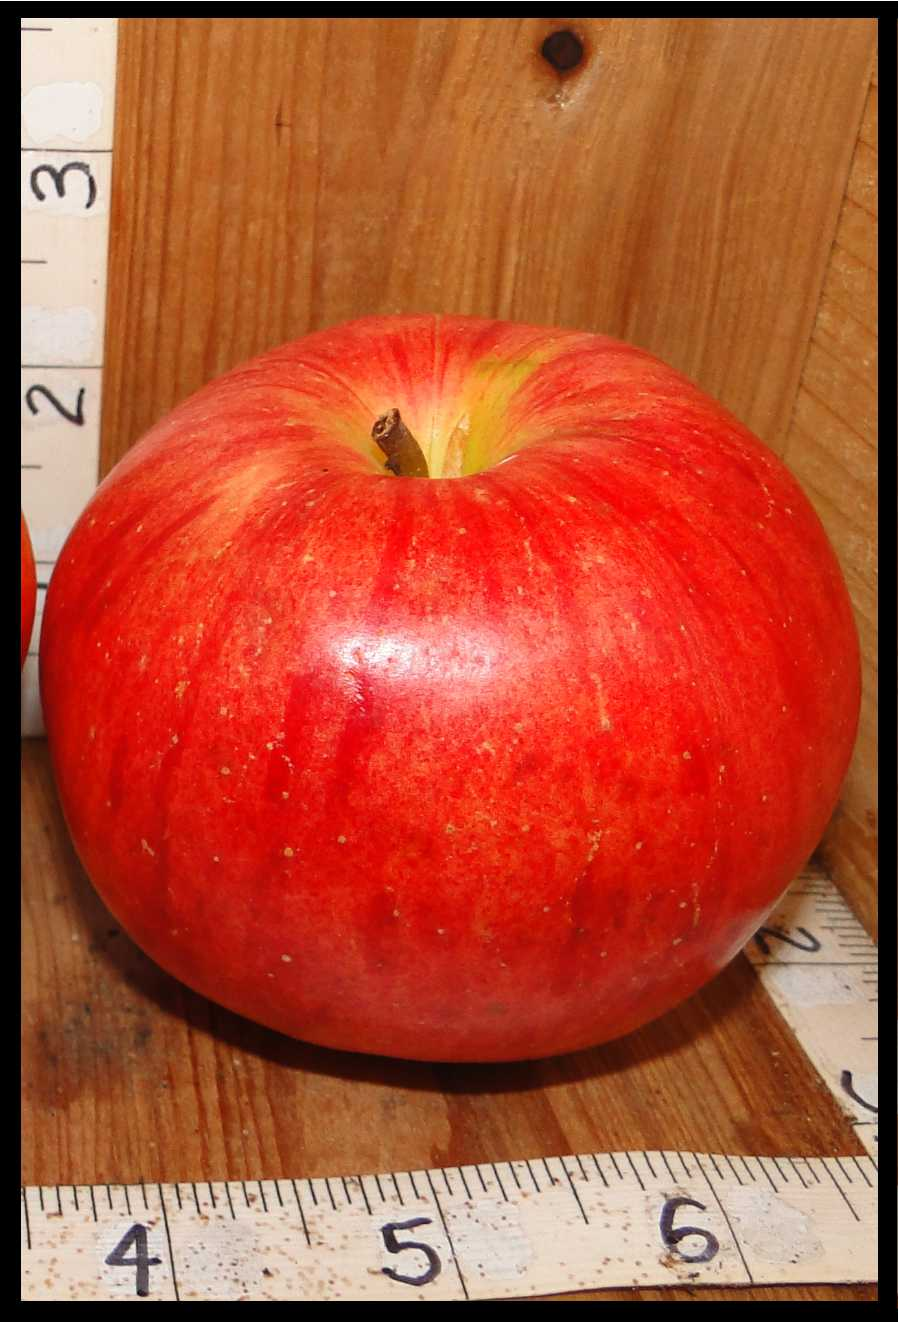 red apple with slight yellow streaks and darker red splotches